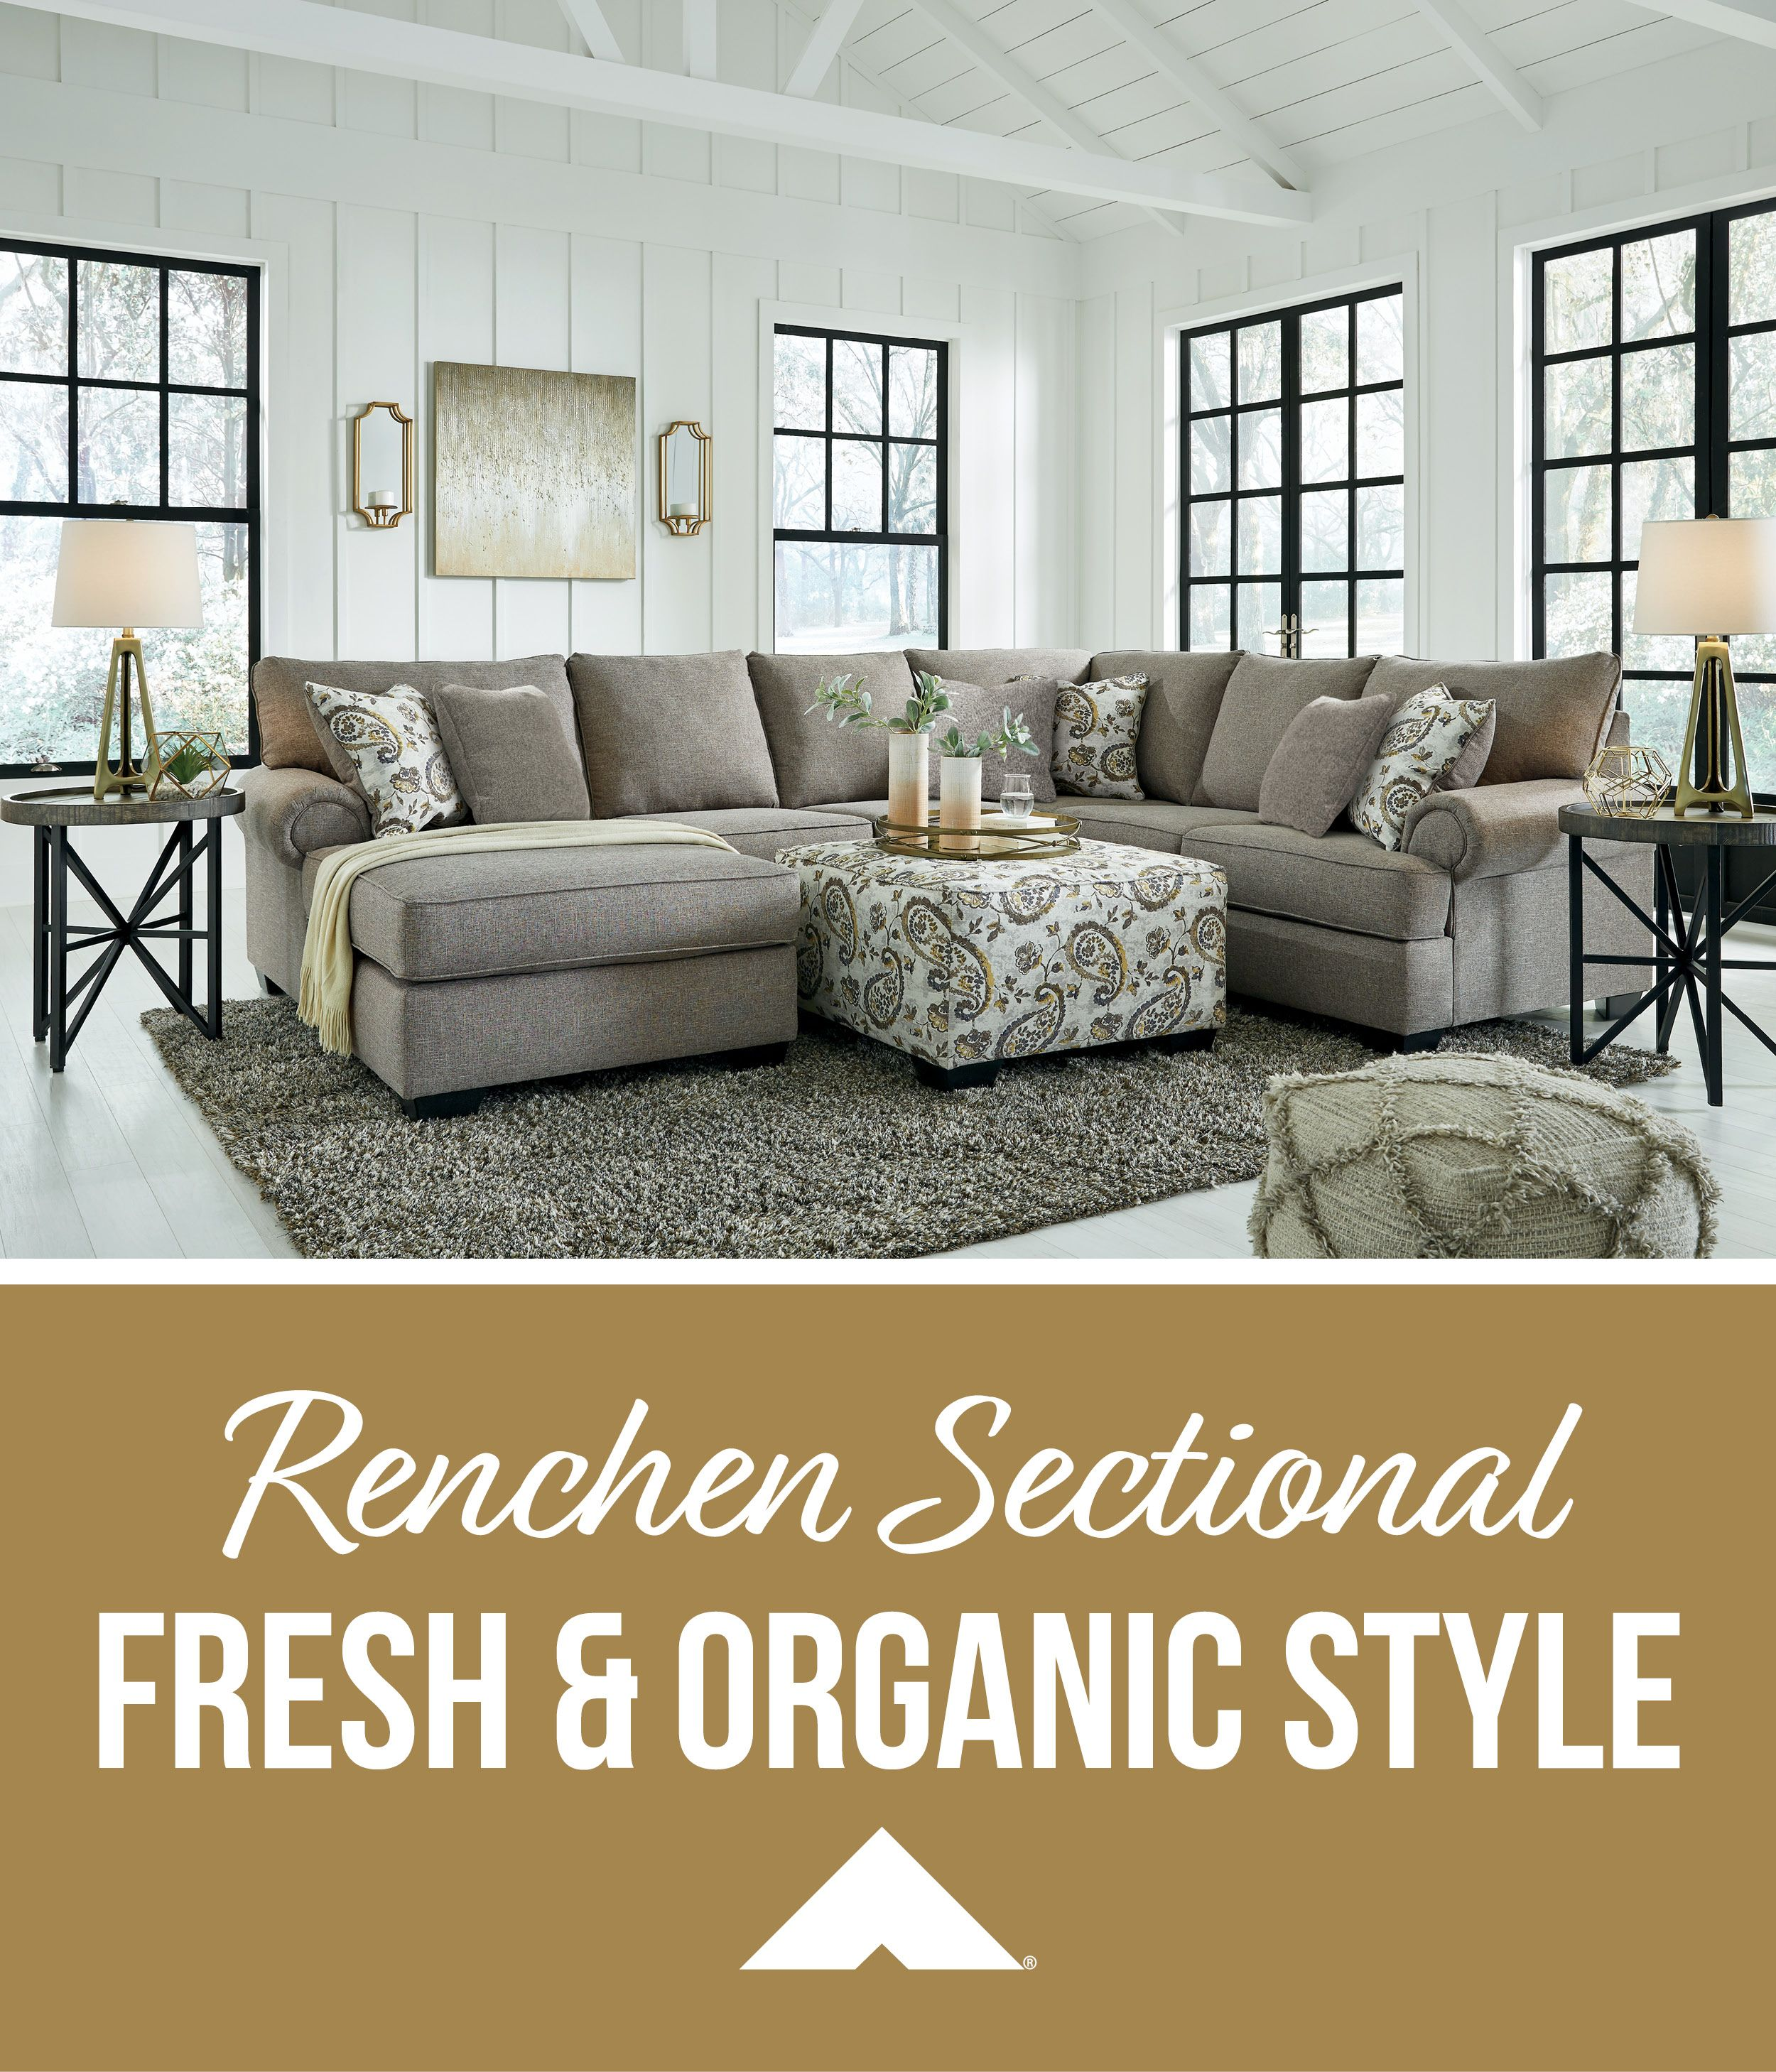 Renchen Pewter Sectional By Ashley Furniture Ashleyfurniture